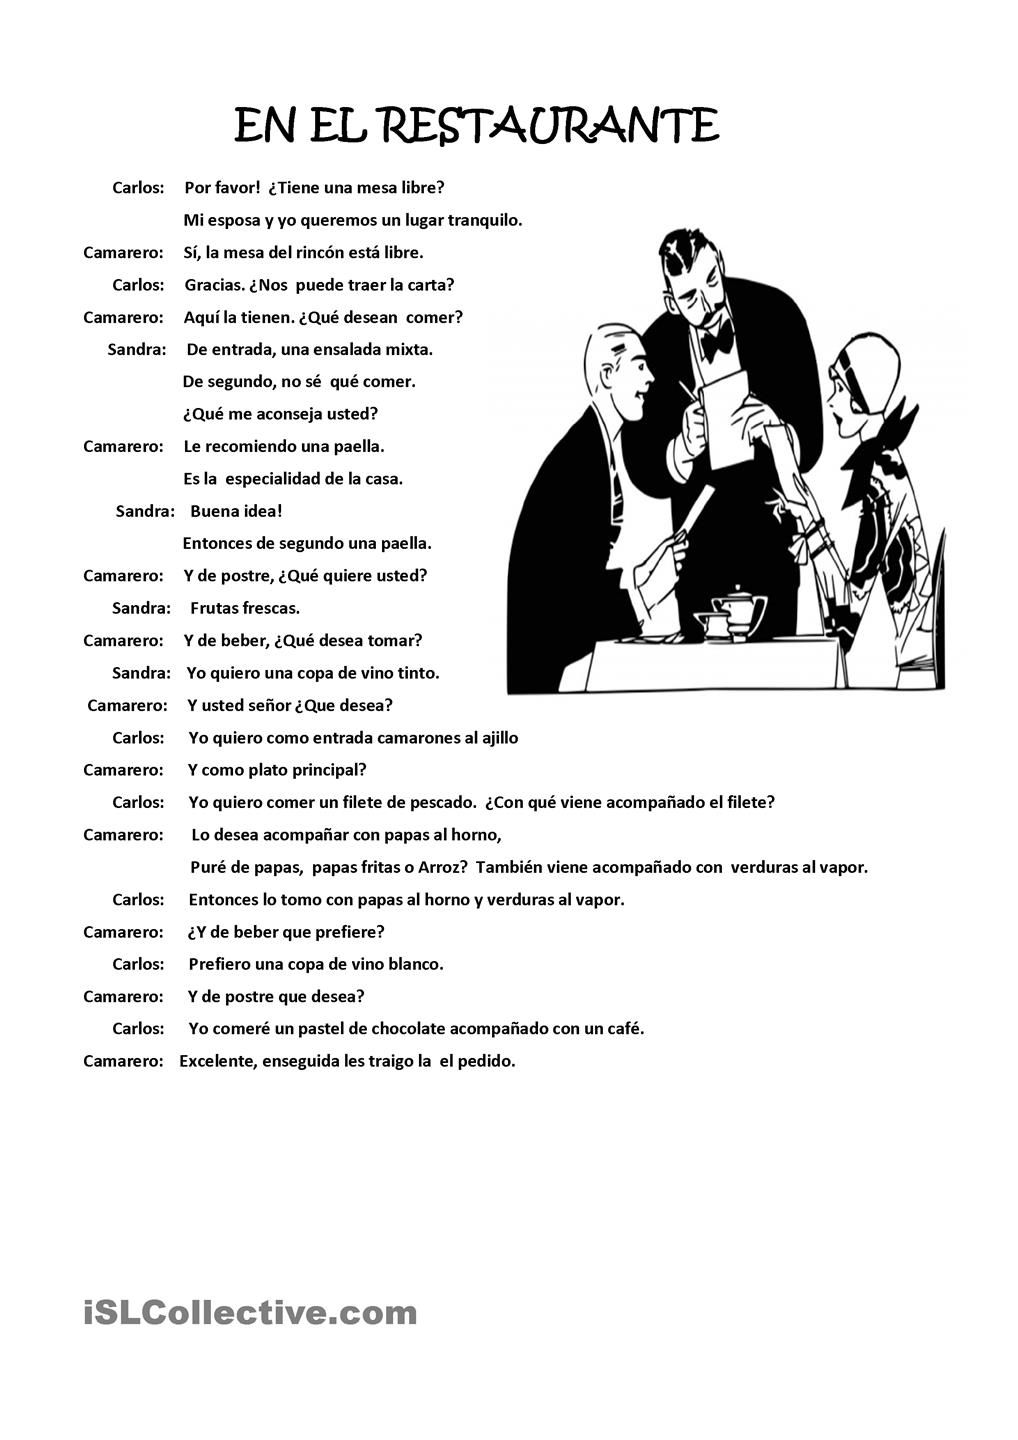 Worksheets Spanish Food Worksheet dialogue between customers and waiter in a restaurant comida y restaurant